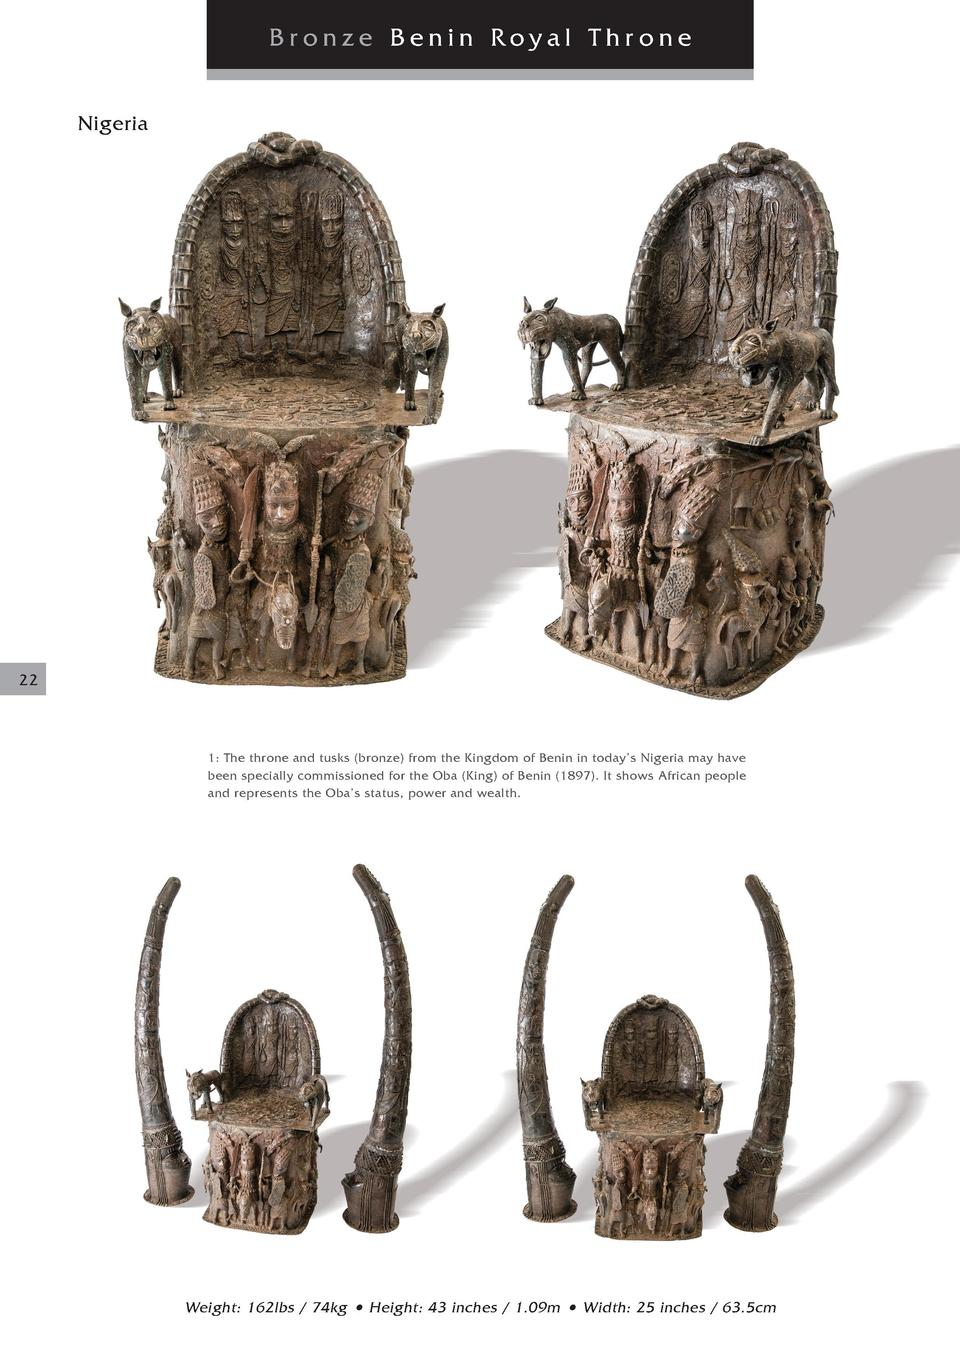 Bronze Benin Royal Throne Nigeria  22  1  The throne and tusks  bronze  from the Kingdom of Benin in today   s Nigeria may...